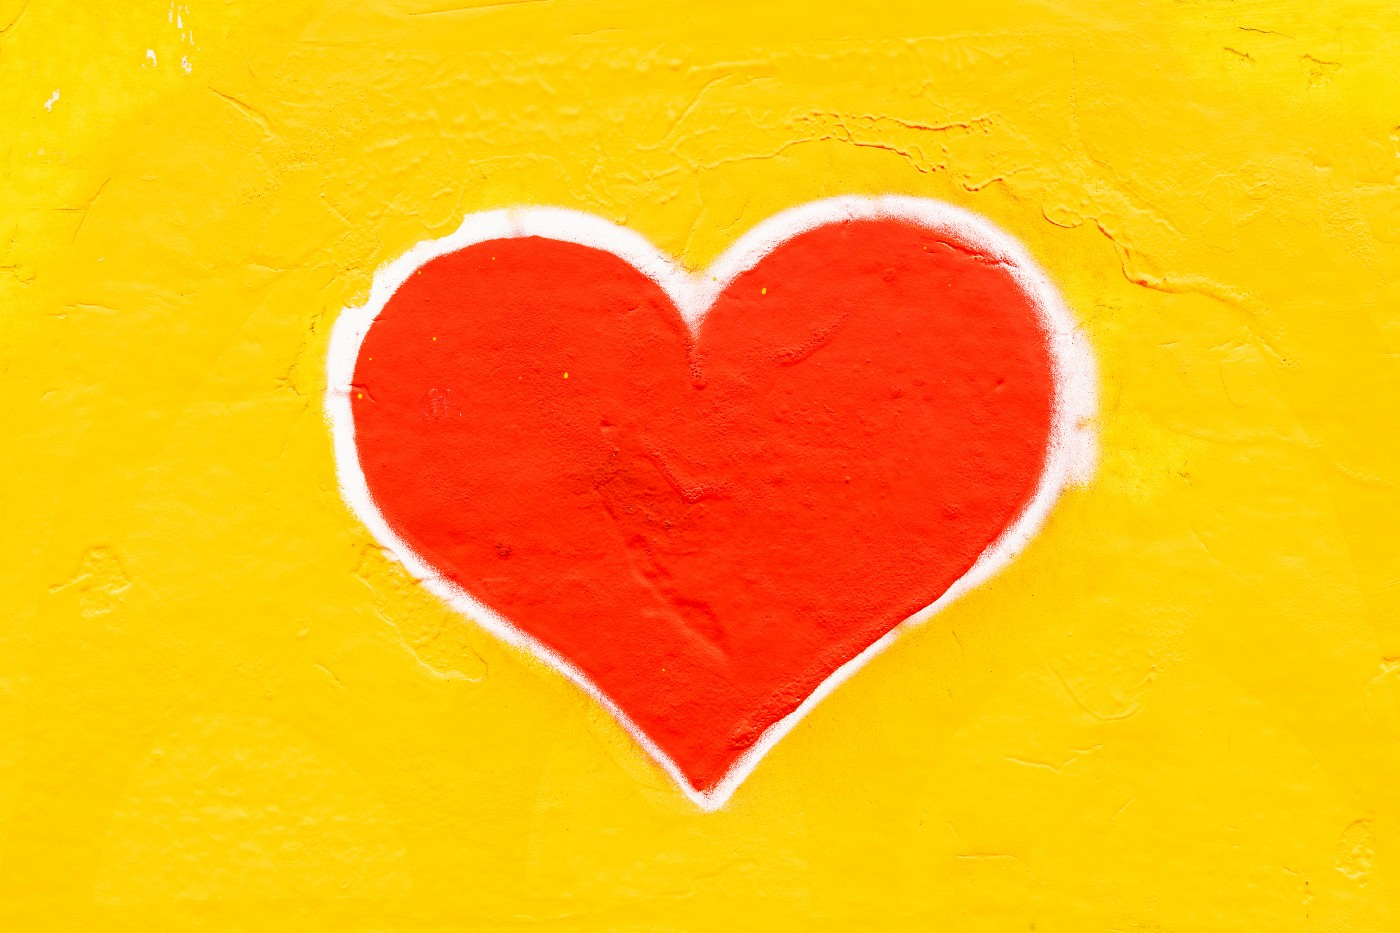 Red heart, with a white outline, painted on a bright yellow, stucco, wall